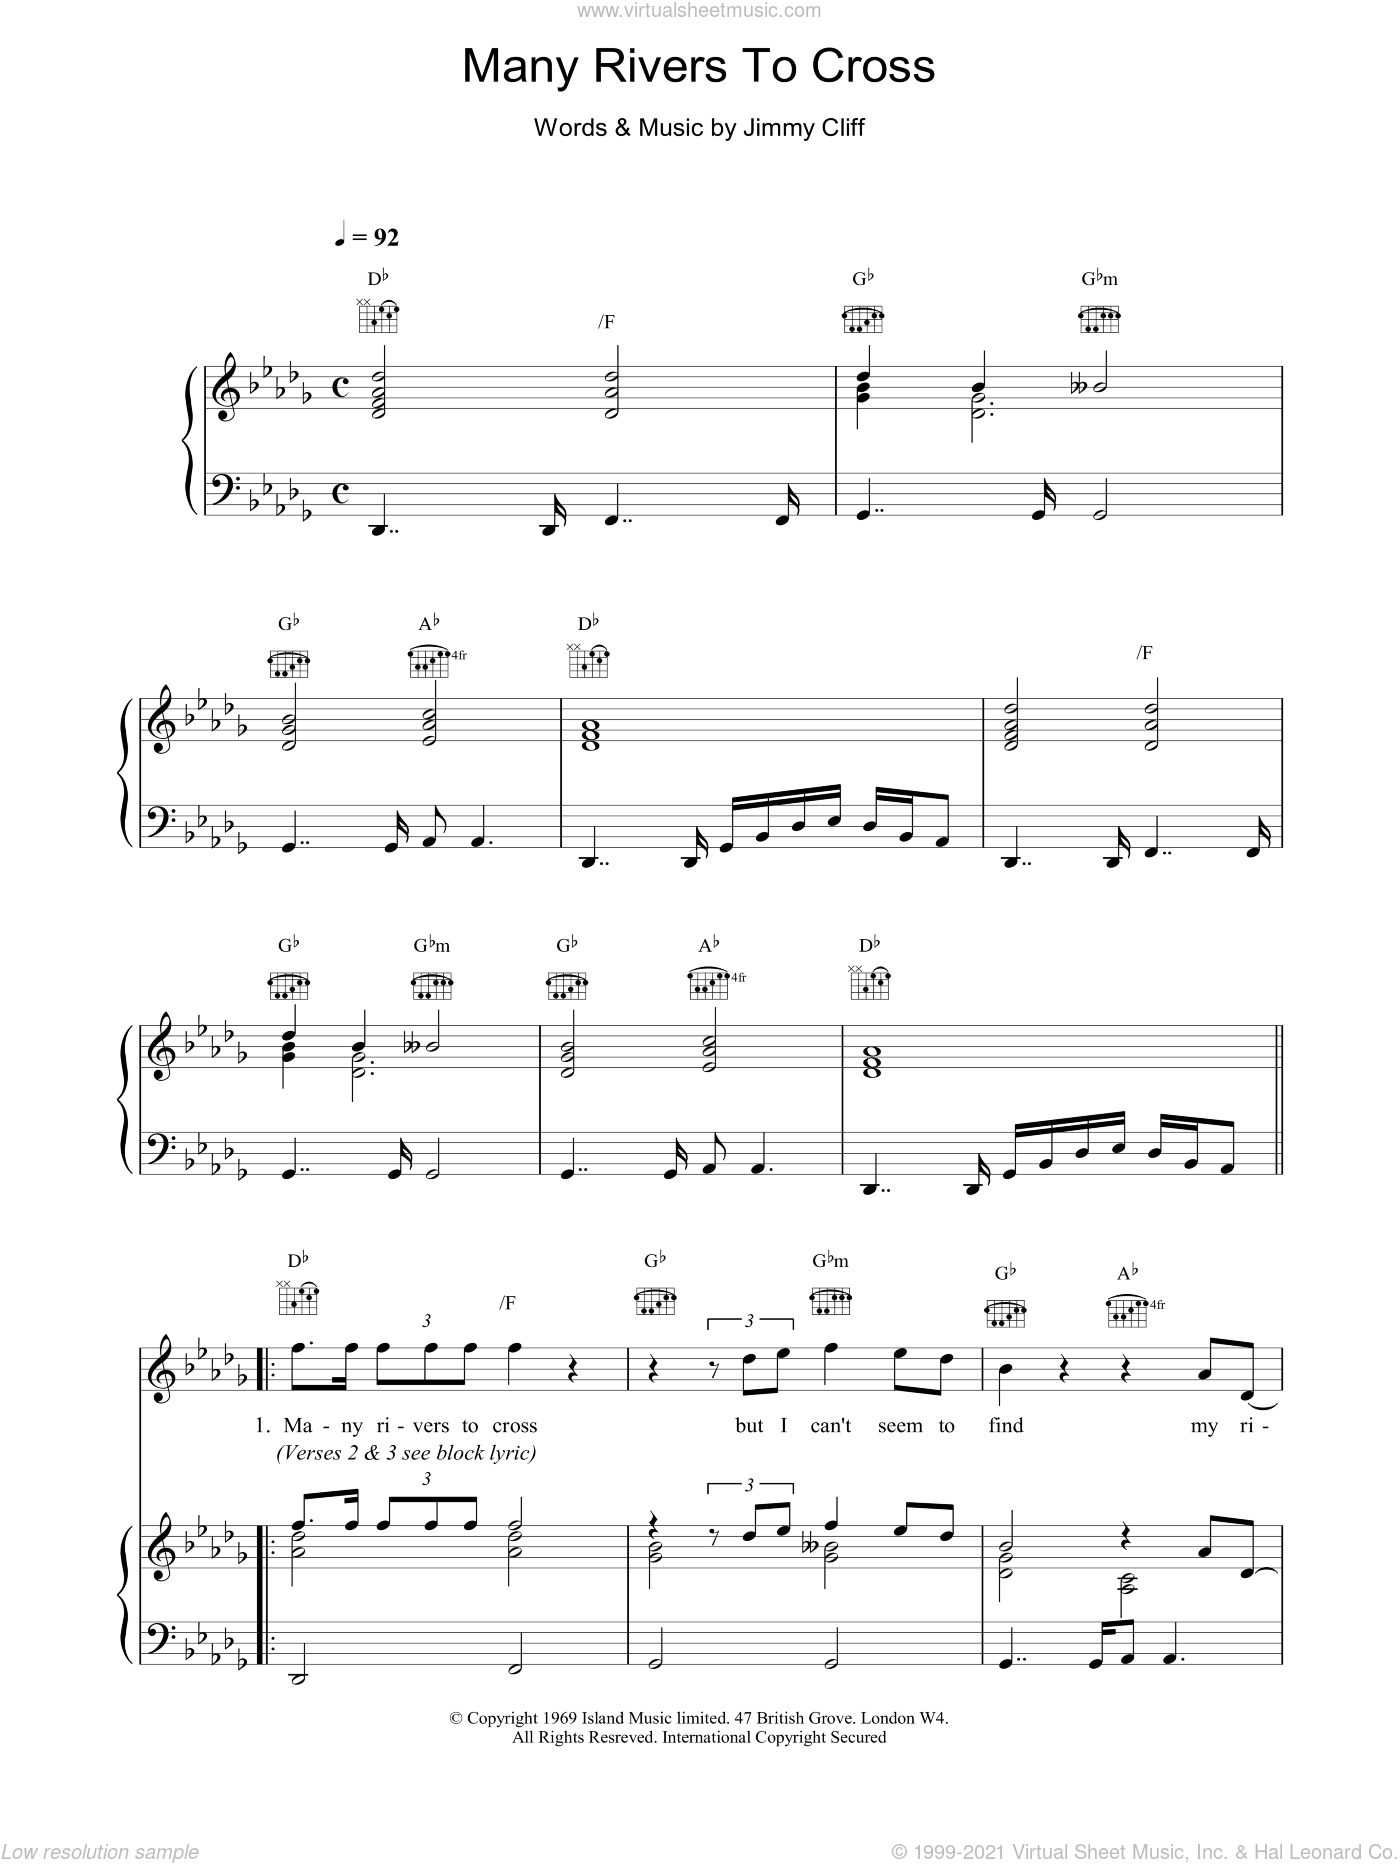 Many Rivers To Cross sheet music for voice, piano or guitar by Jimmy Cliff and UB40. Score Image Preview.